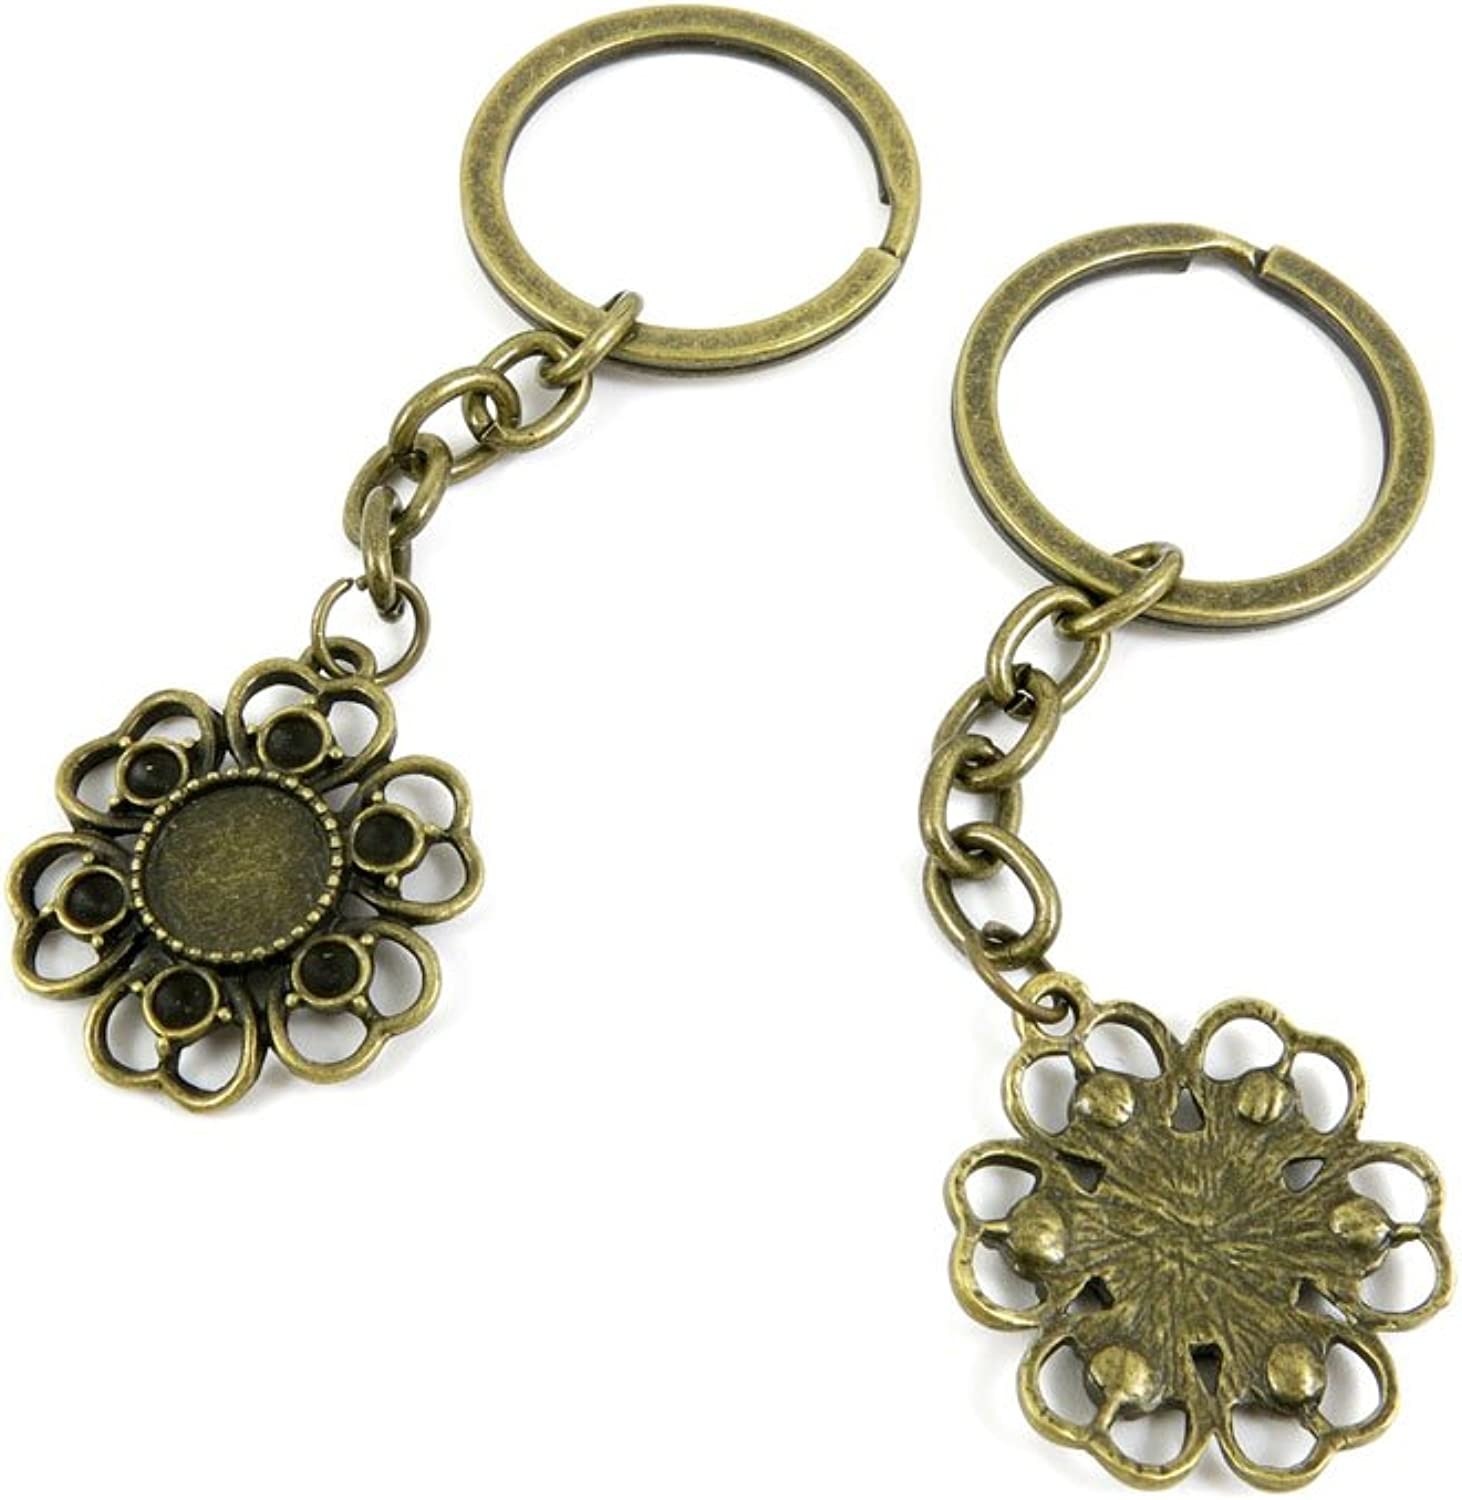 150 Pieces Fashion Jewelry Keyring Keychain Door Car Key Tag Ring Chain Supplier Supply Wholesale Bulk Lots W4ND7 Flower Cabochon Setting Blank